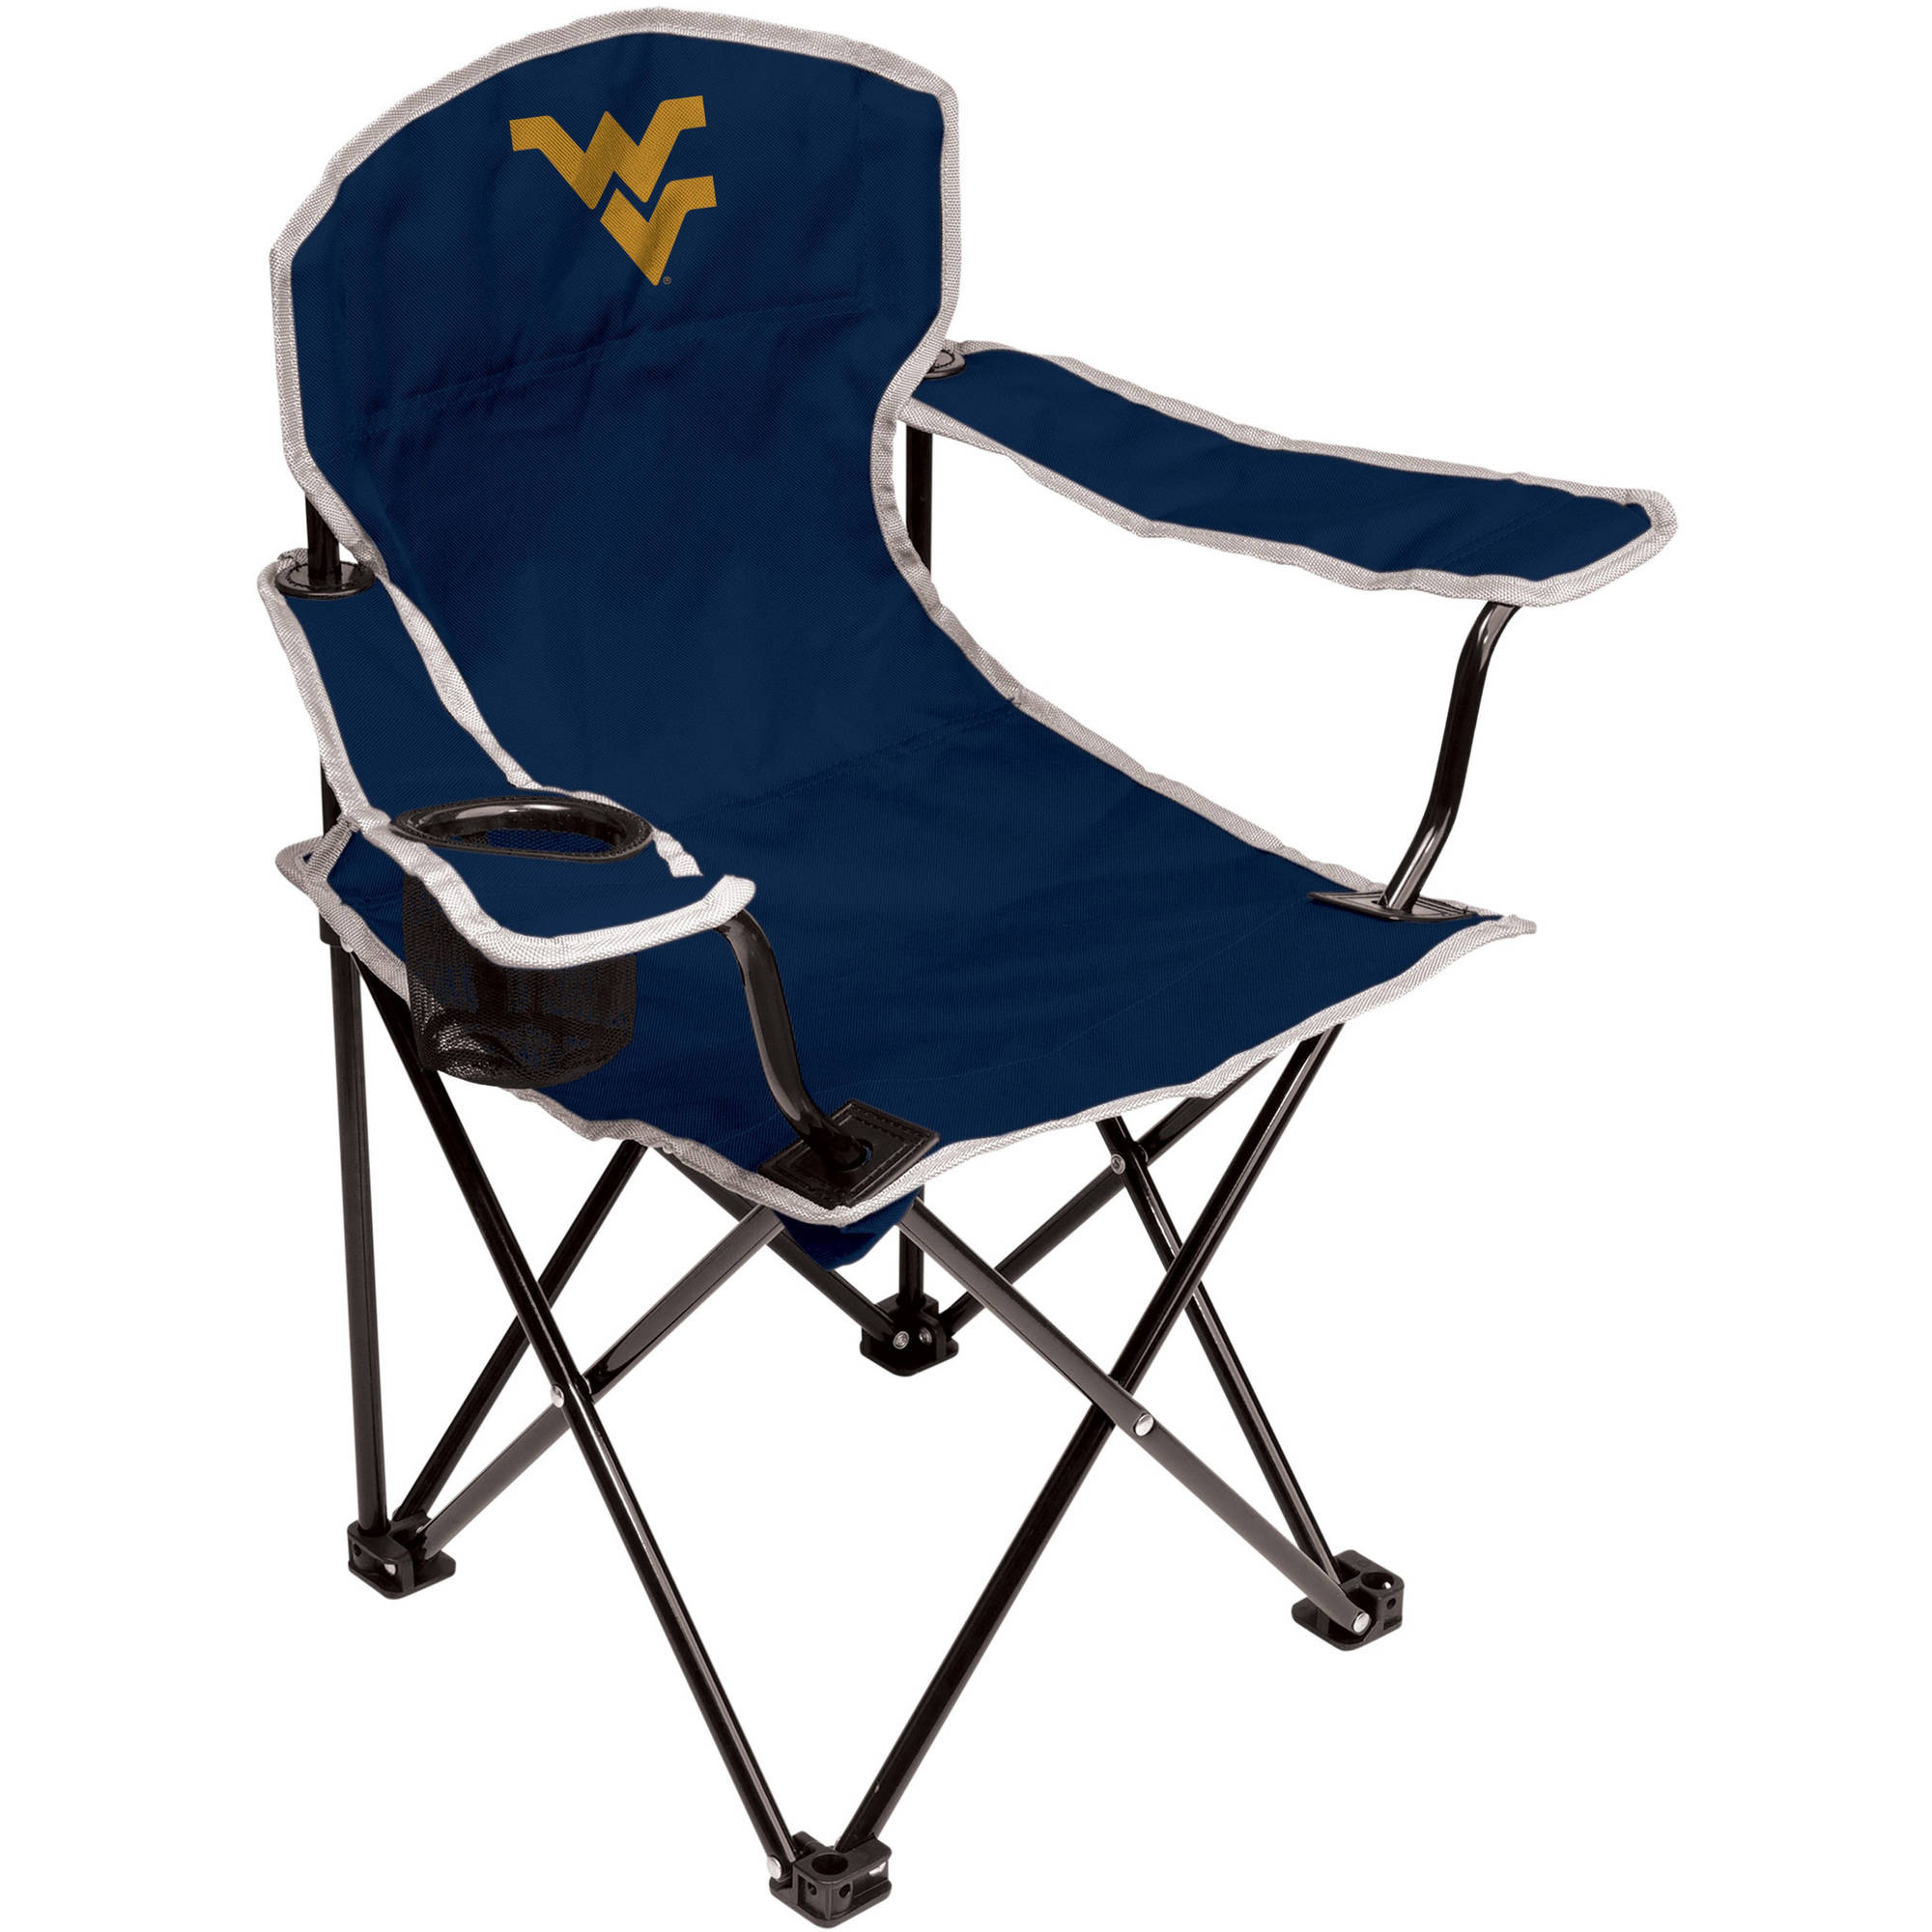 NCAA West Virginia Mountaineers Youth Size Tailgate Chair from Coleman by Rawlings